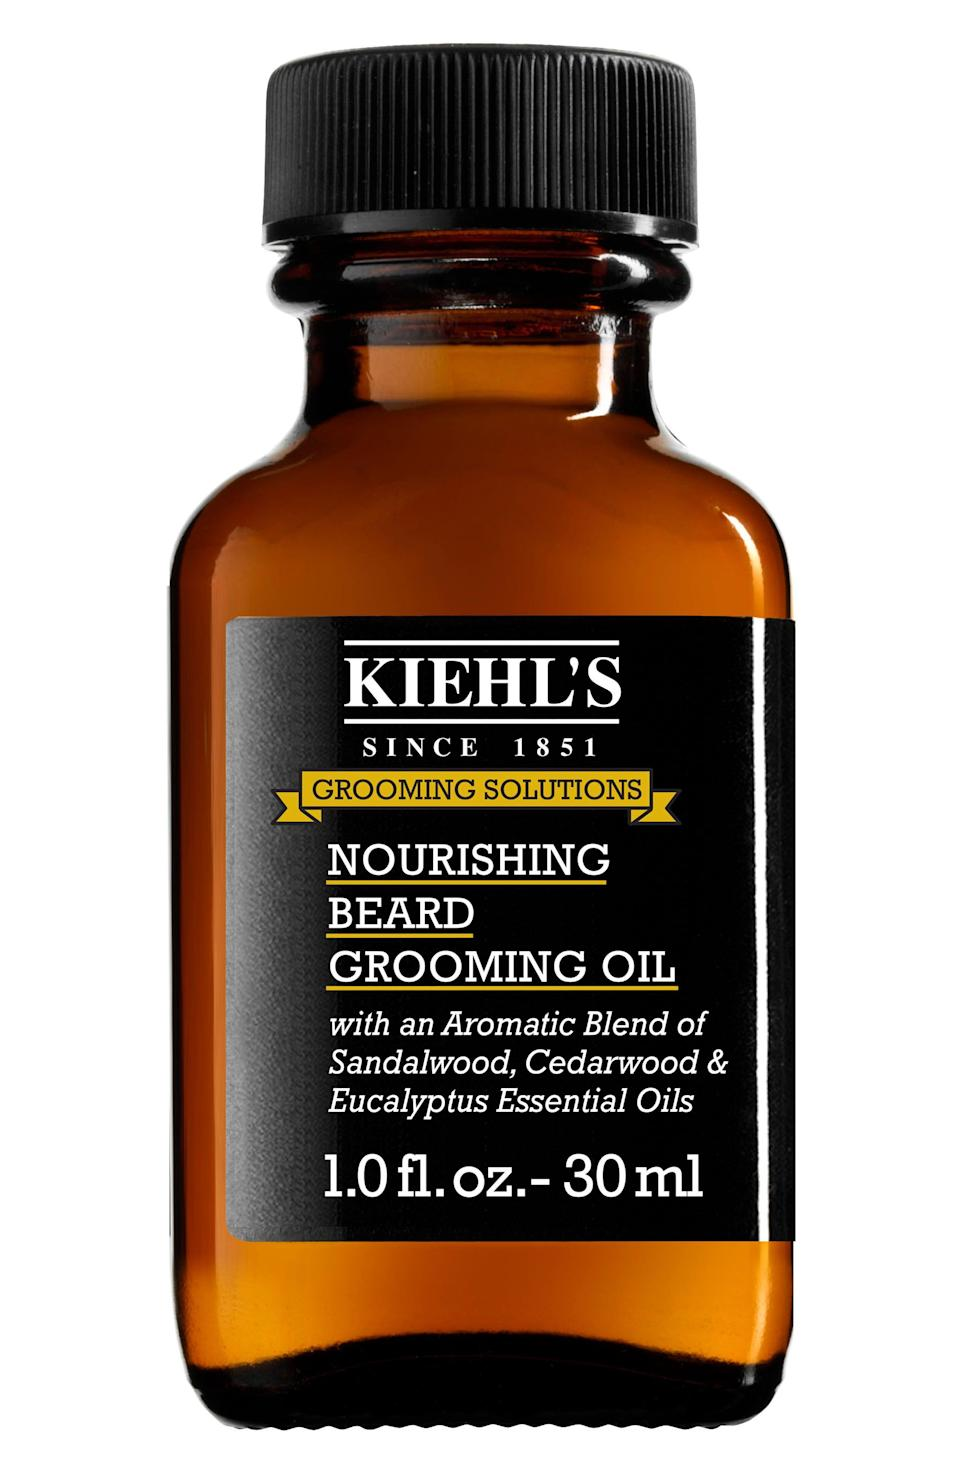 """<p><strong>Kiehl's</strong></p><p>nordstrom.com</p><p><strong>$30.00</strong></p><p><a href=""""https://go.redirectingat.com?id=74968X1596630&url=https%3A%2F%2Fshop.nordstrom.com%2Fs%2Fkiehls-since-1851-nourishing-beard-grooming-oil%2F4929737&sref=https%3A%2F%2Fwww.redbookmag.com%2Flife%2Fg34761881%2Fgift-ideas-for-men%2F"""" rel=""""nofollow noopener"""" target=""""_blank"""" data-ylk=""""slk:Shop Now"""" class=""""link rapid-noclick-resp"""">Shop Now</a></p><p>Facial hair of any length or style can benefit from a dose of this lightweight, woodsy-scented oil which softens whiskers and adds shine but also moisturizes the skin underneath for maximum facial hair health. </p>"""